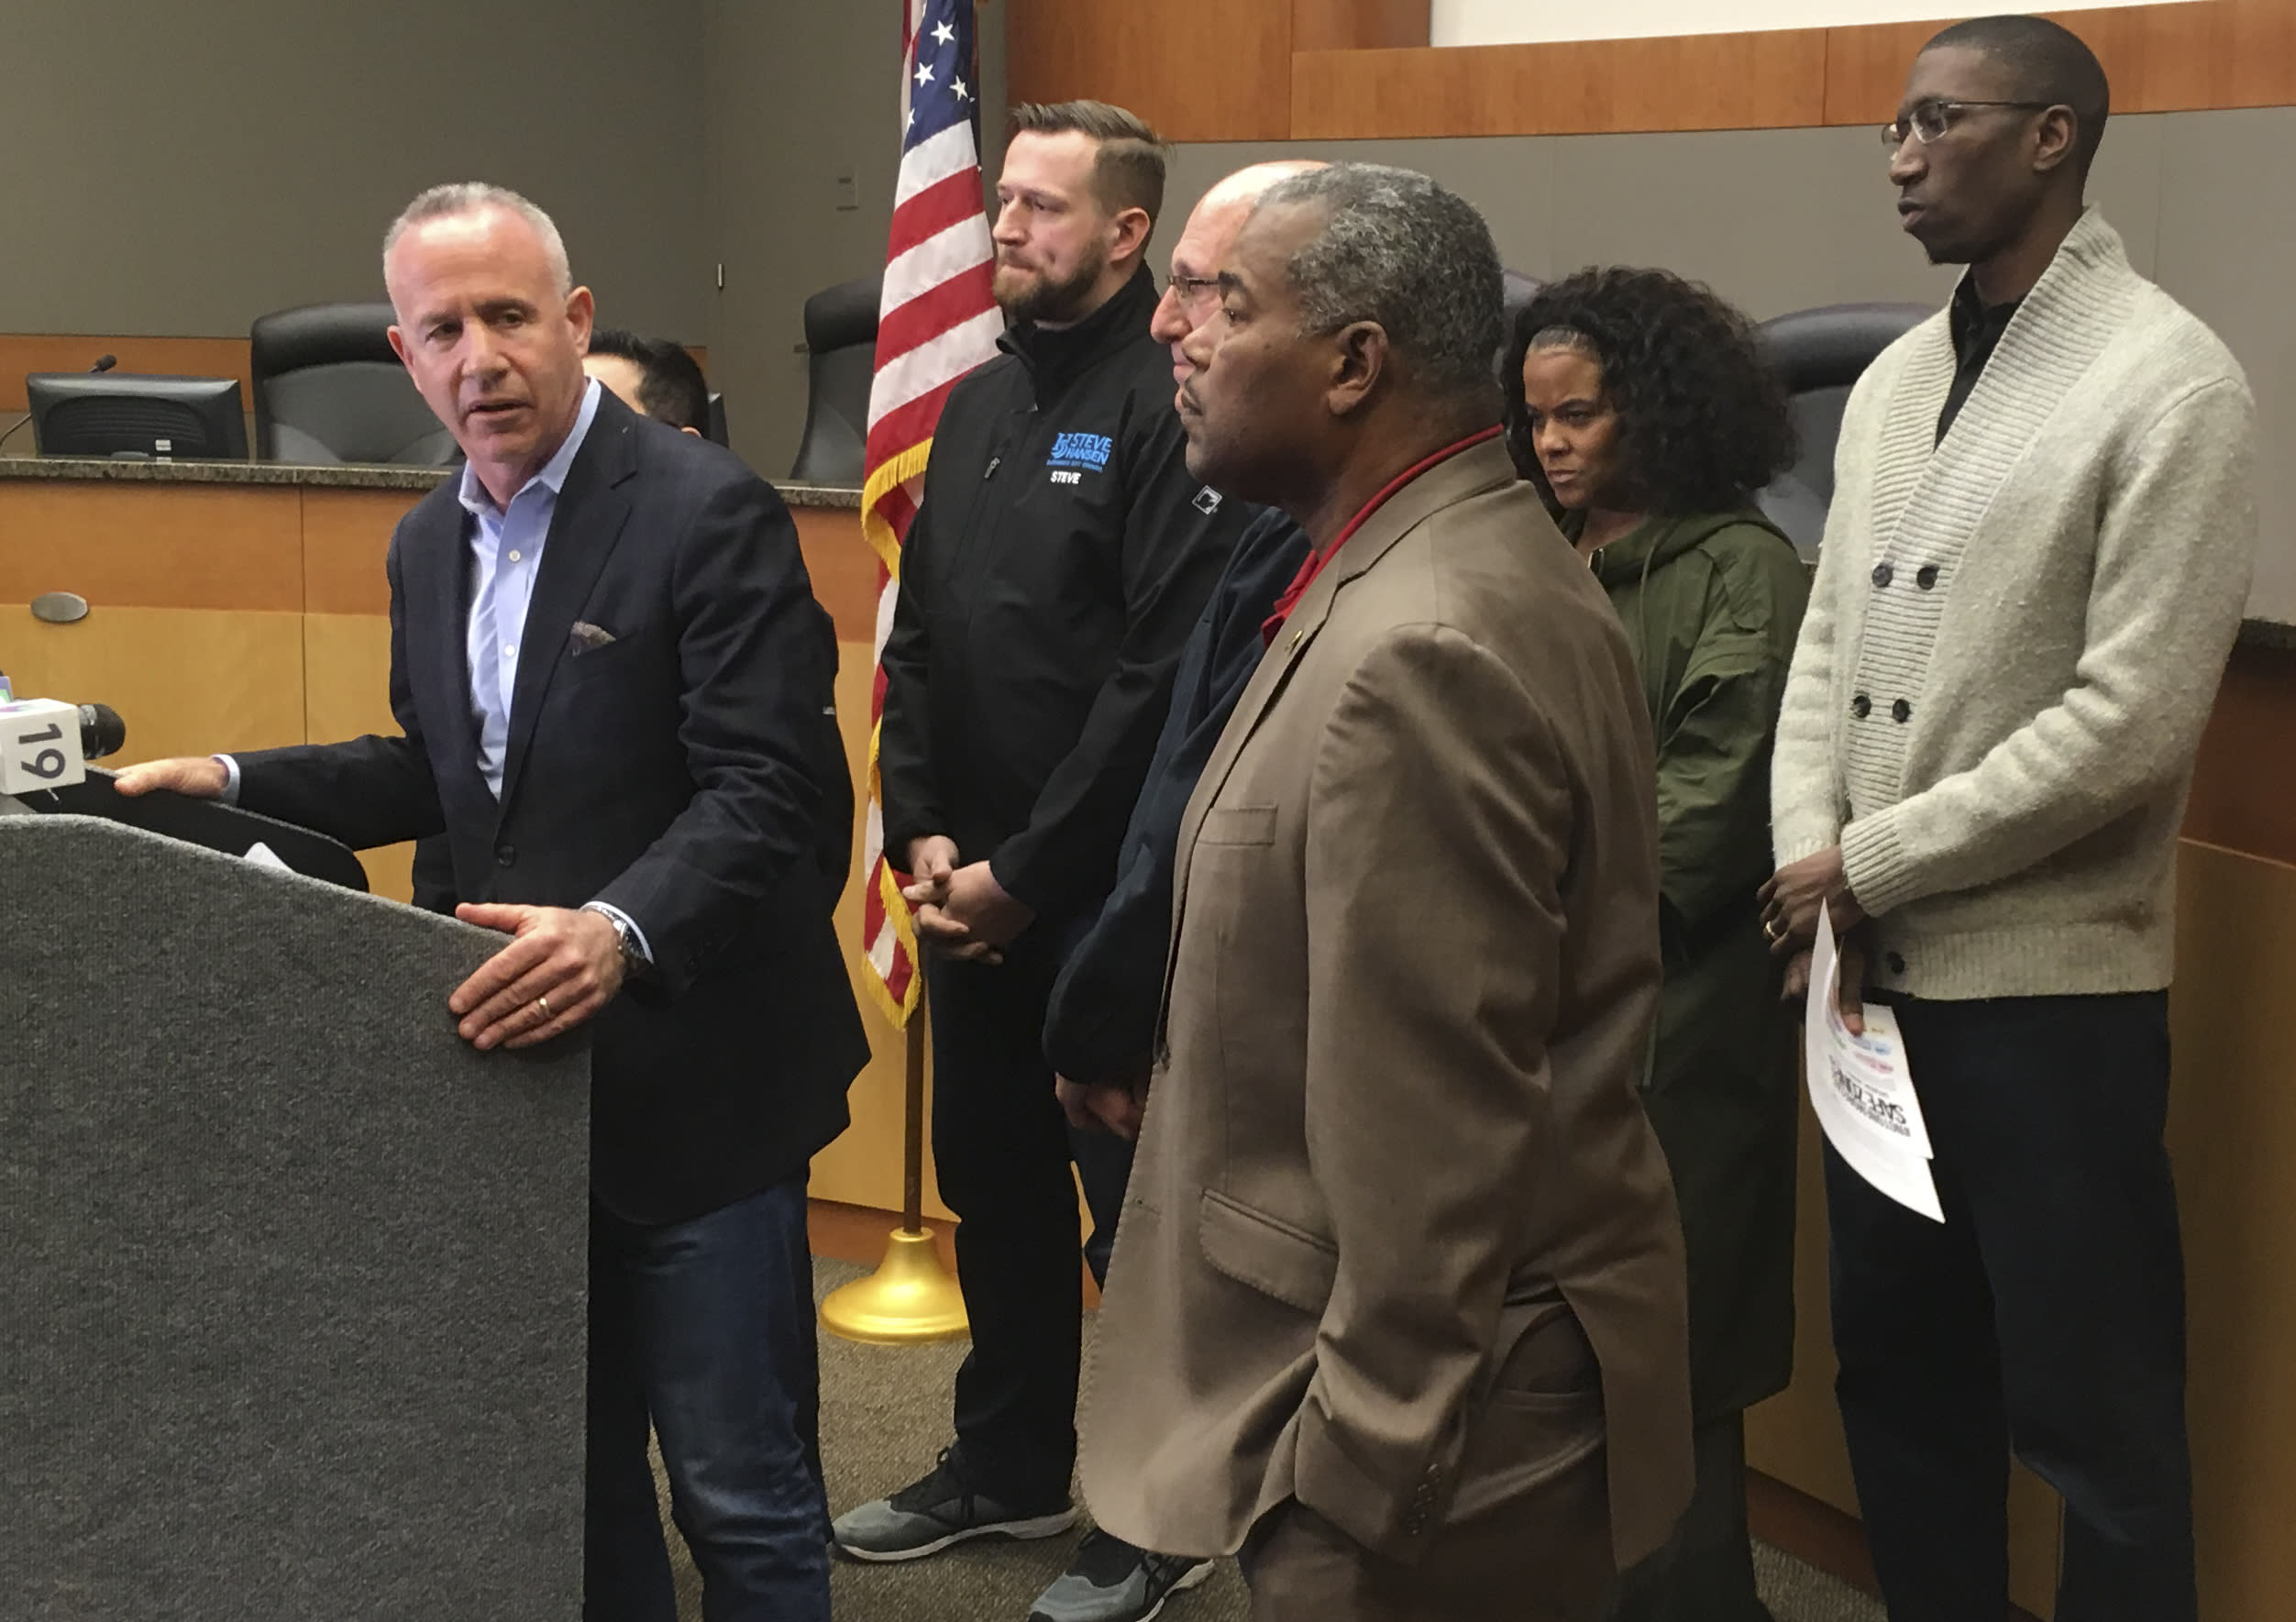 In this March 2, 2019 photo Sacramento Mayor Darrell Steinberg apologizes at City Hall, for Sacramento police officers' fatal shooting of 22-year-old Stephon Clark nearly a year ago after they erroneously thought the black vandalism suspect was pointing a gun. He's backed by city council members and pastors advocating peaceful change. Steinberg is among a growing number of officials saying California should toughen its legal standard for when officers can use deadly force. (AP Photo/Don Thompson)